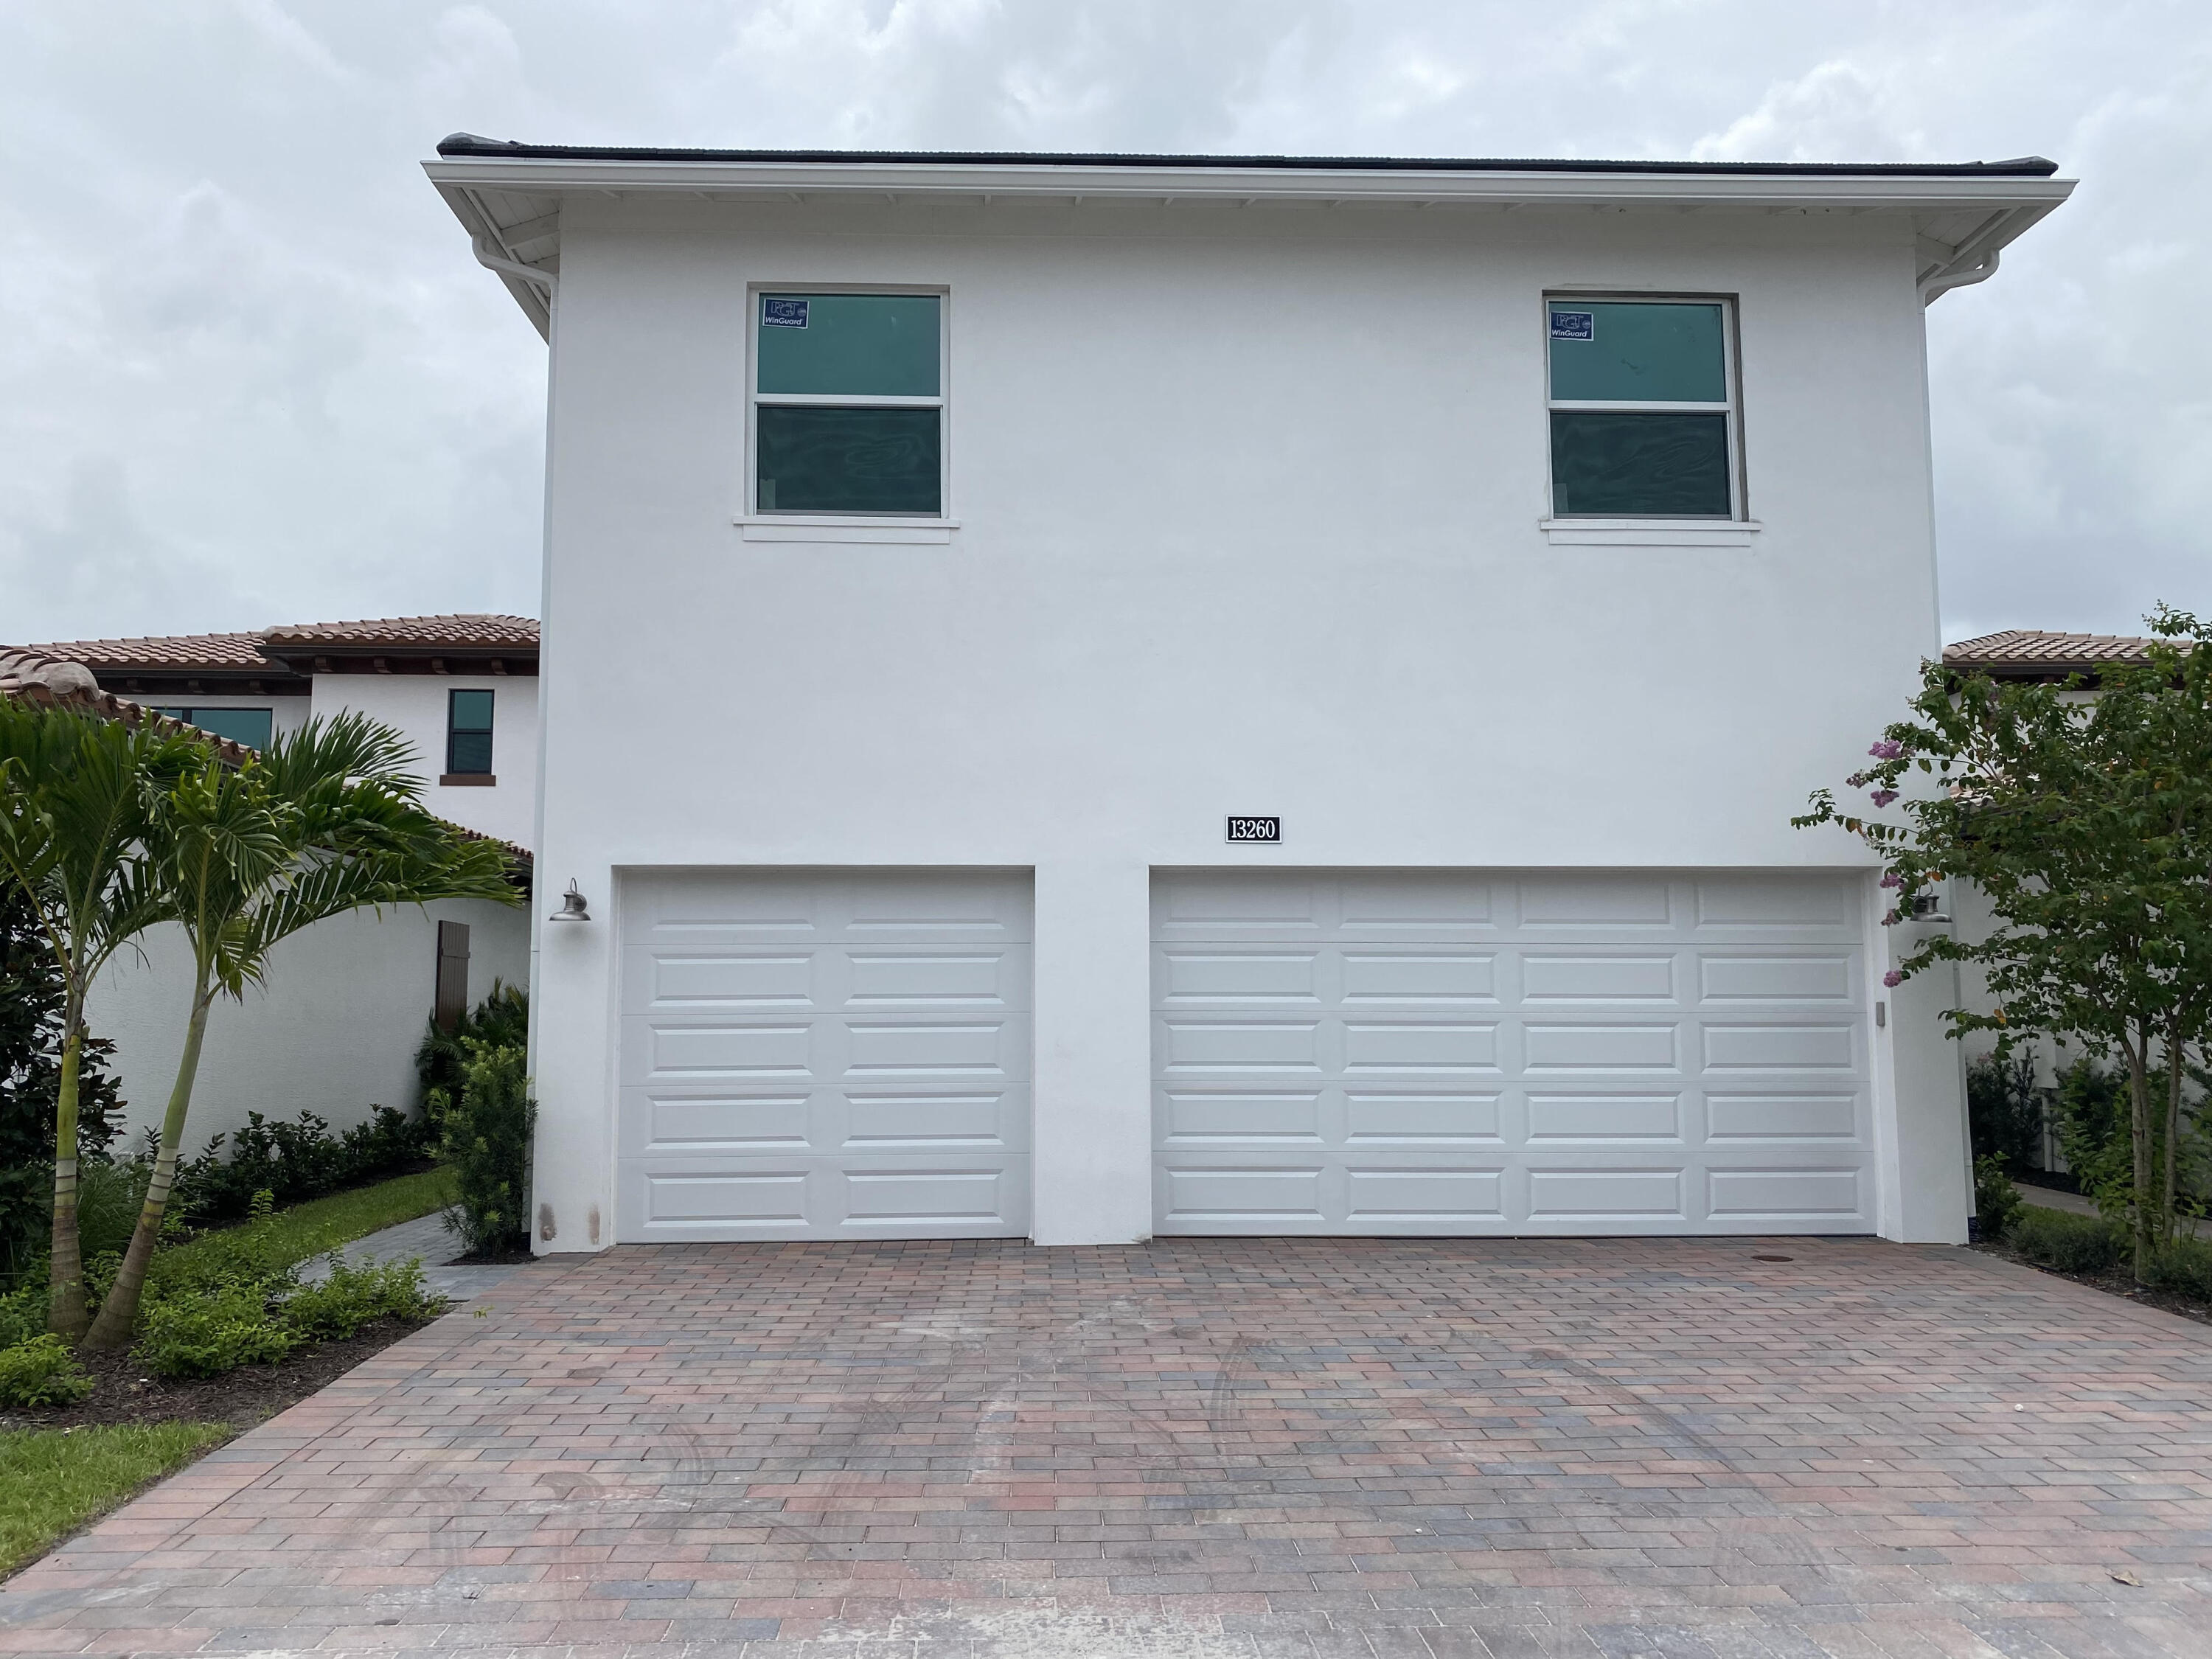 BRAND NEW 2021 never lived in casita garage apartment in the luxury community of Alton in Palm Beach Gardens. This casita is located upstairs above the main home's 3 car garage and features 1 bedroom, 1 bath, a living room and a full kitchen. The kitchen boasts white shaker cabinets, granite countertops, stainless steel appliances and bar seating. Private entrance and driveway parking. All utilities are included PLUS a monthly cleaning service. You will have access to the Club at ALTON, a contemporary, resident-only facility that serves as the community's vibrant social center. Amenities include a resort-style pool, fitness center, sports courts, beach volleyball, poolside cabanas, a playground and social spaces. There is also an outdoor fitness circuit, easy access to I-95, Alton Town Center, restaurants, shopping, beaches and all the amenities our wonderful area has to offer. Minimum 700 credit score required. No pets.